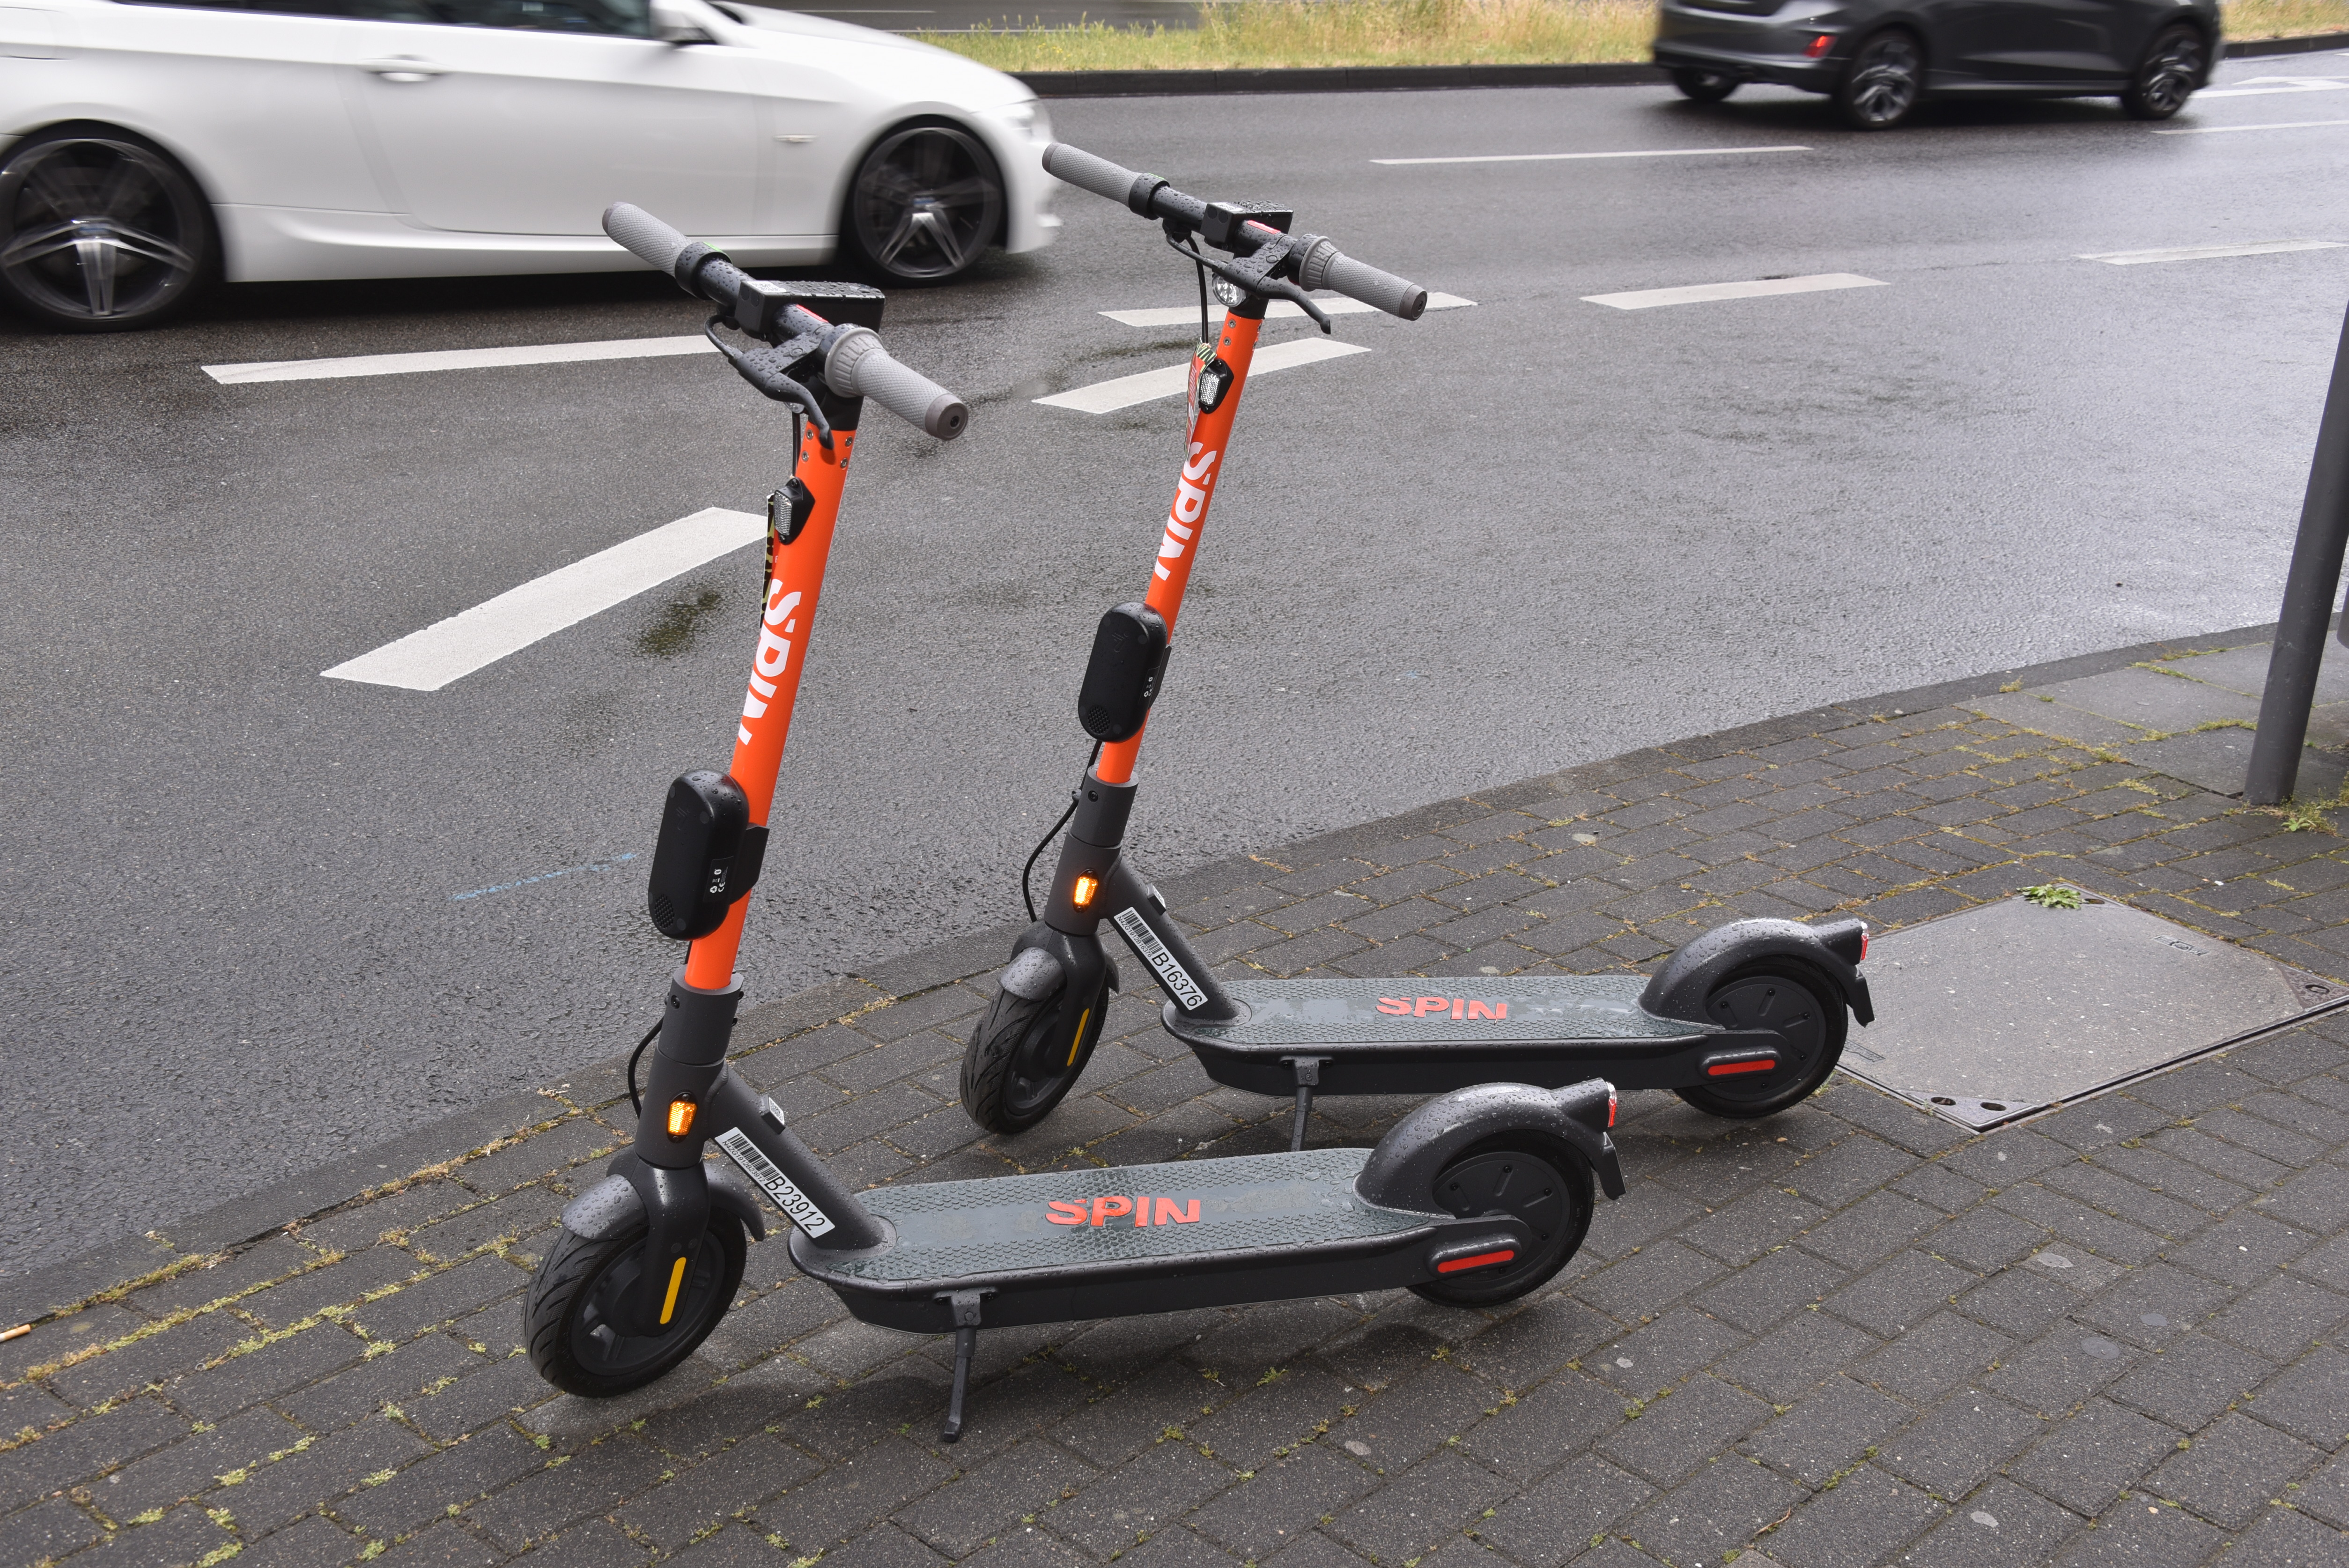 Spin E Scooter